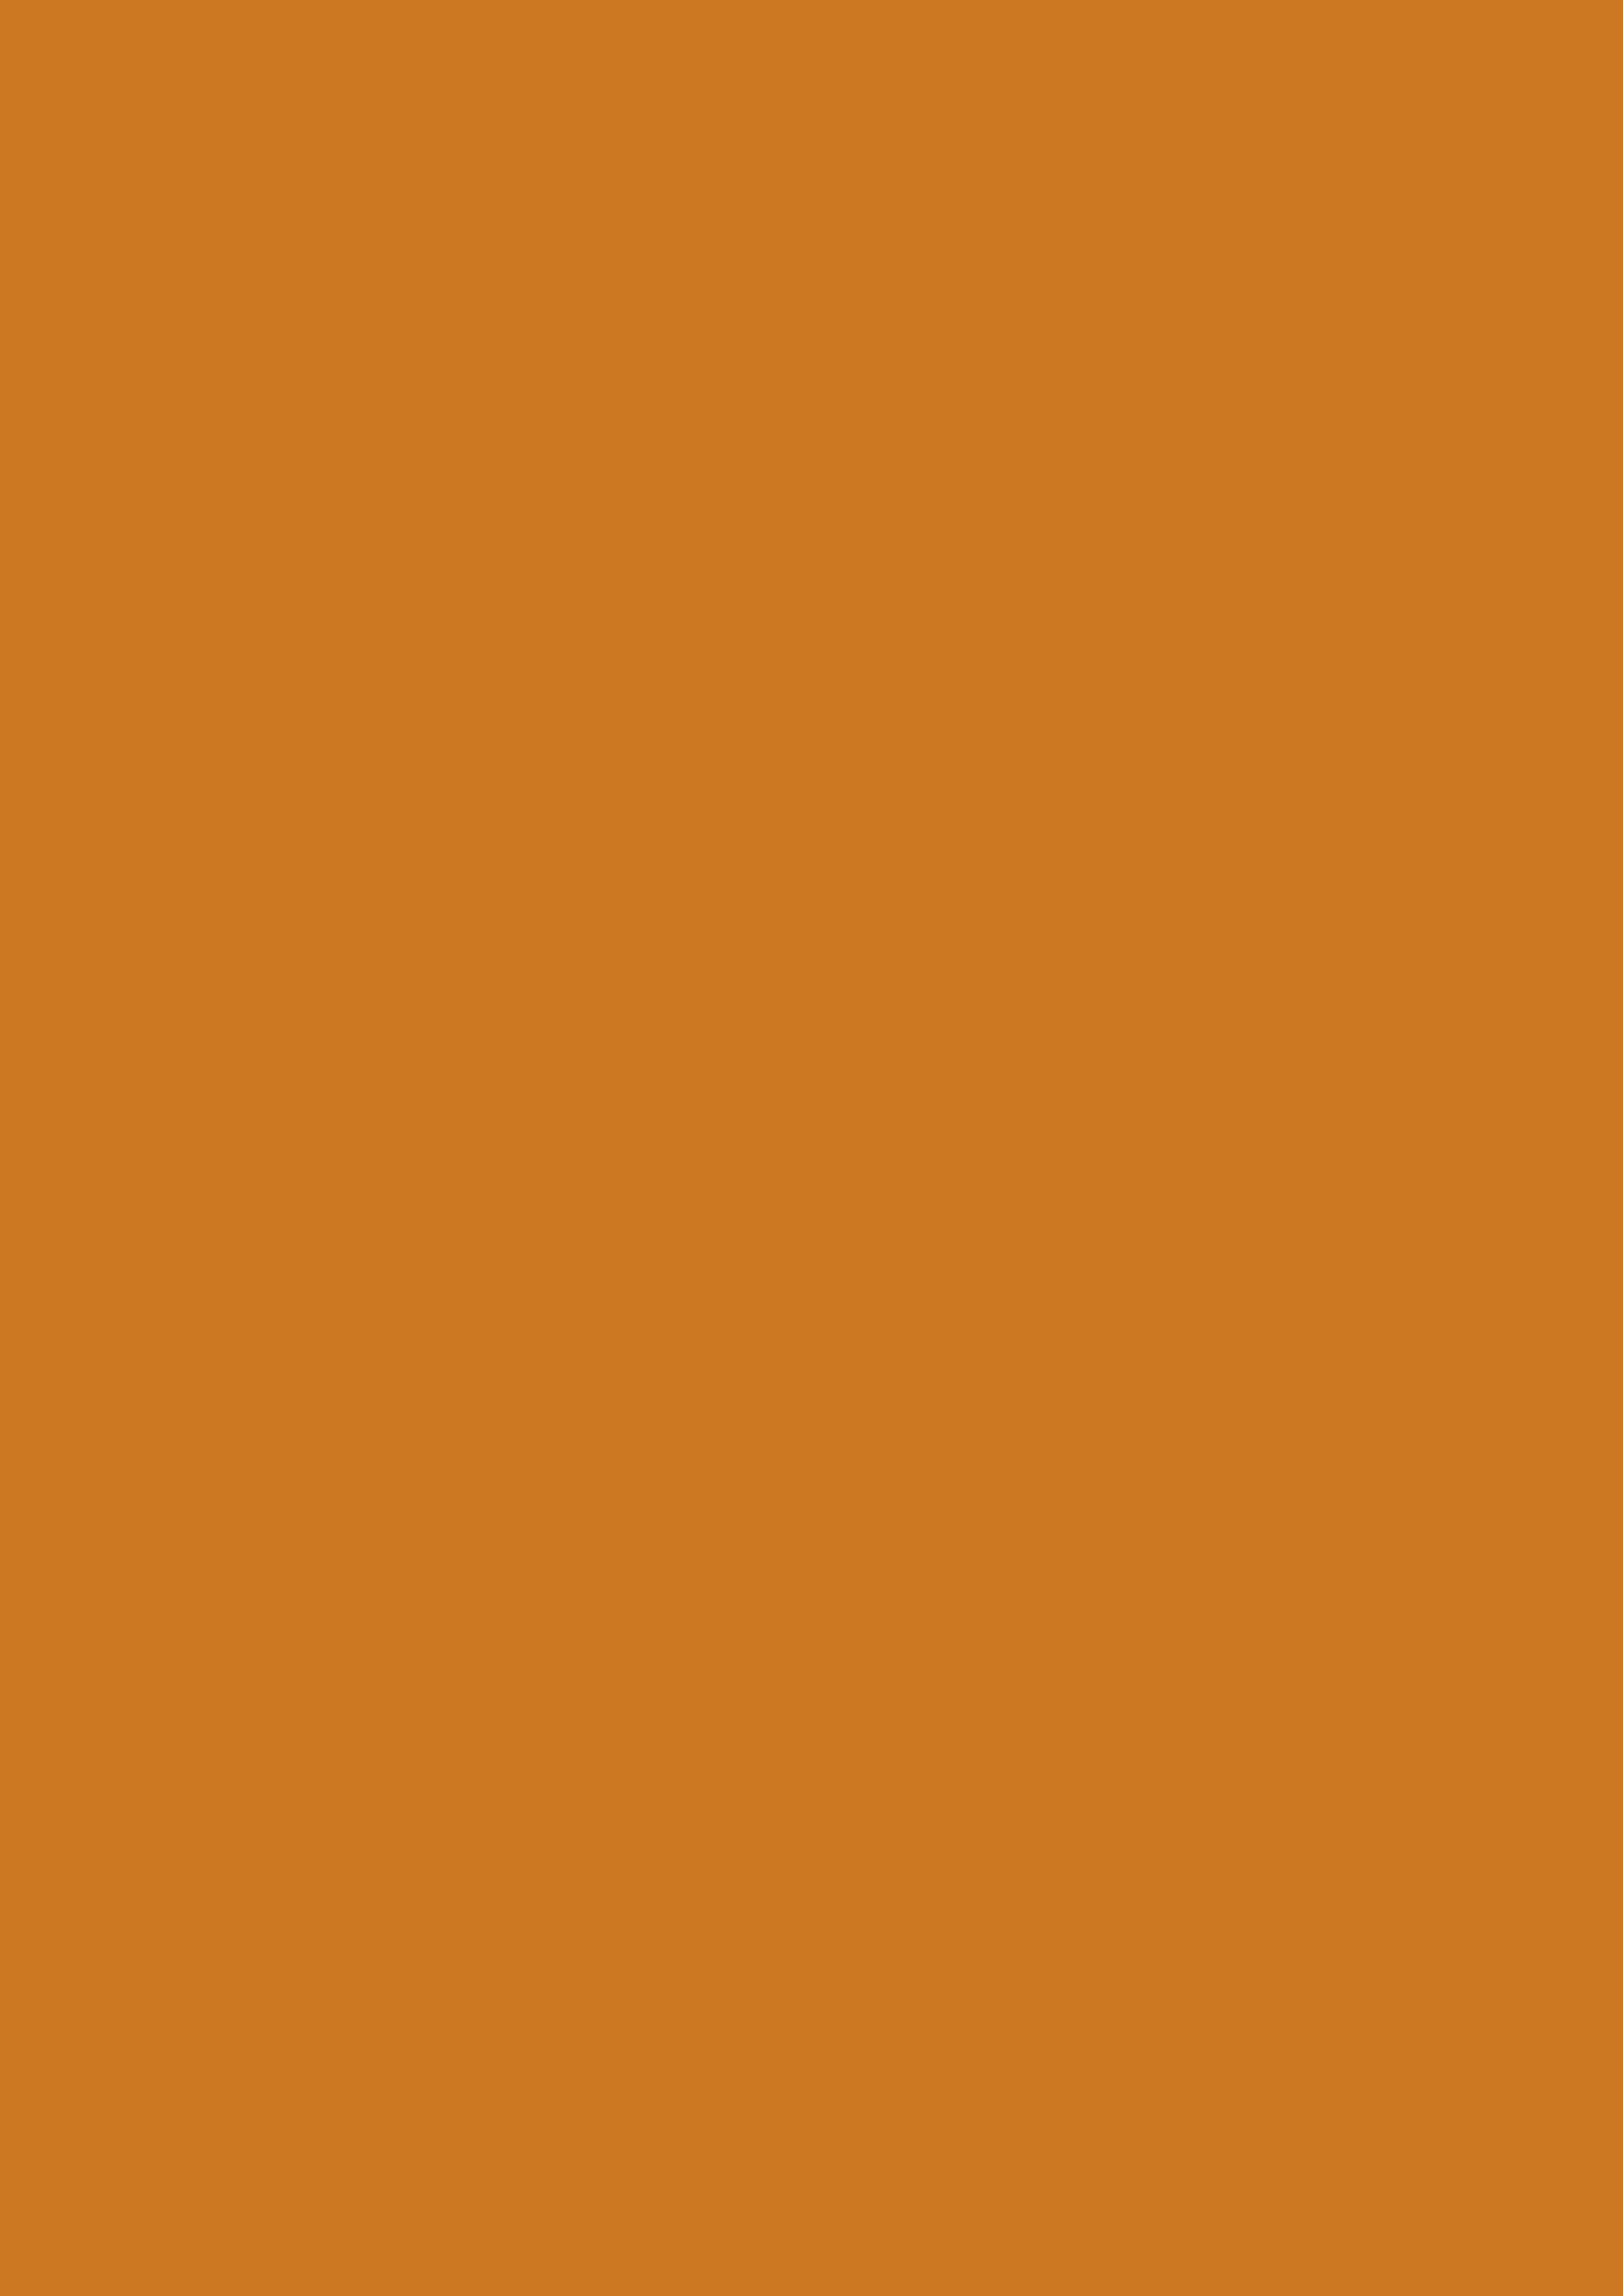 2480x3508 Ochre Solid Color Background